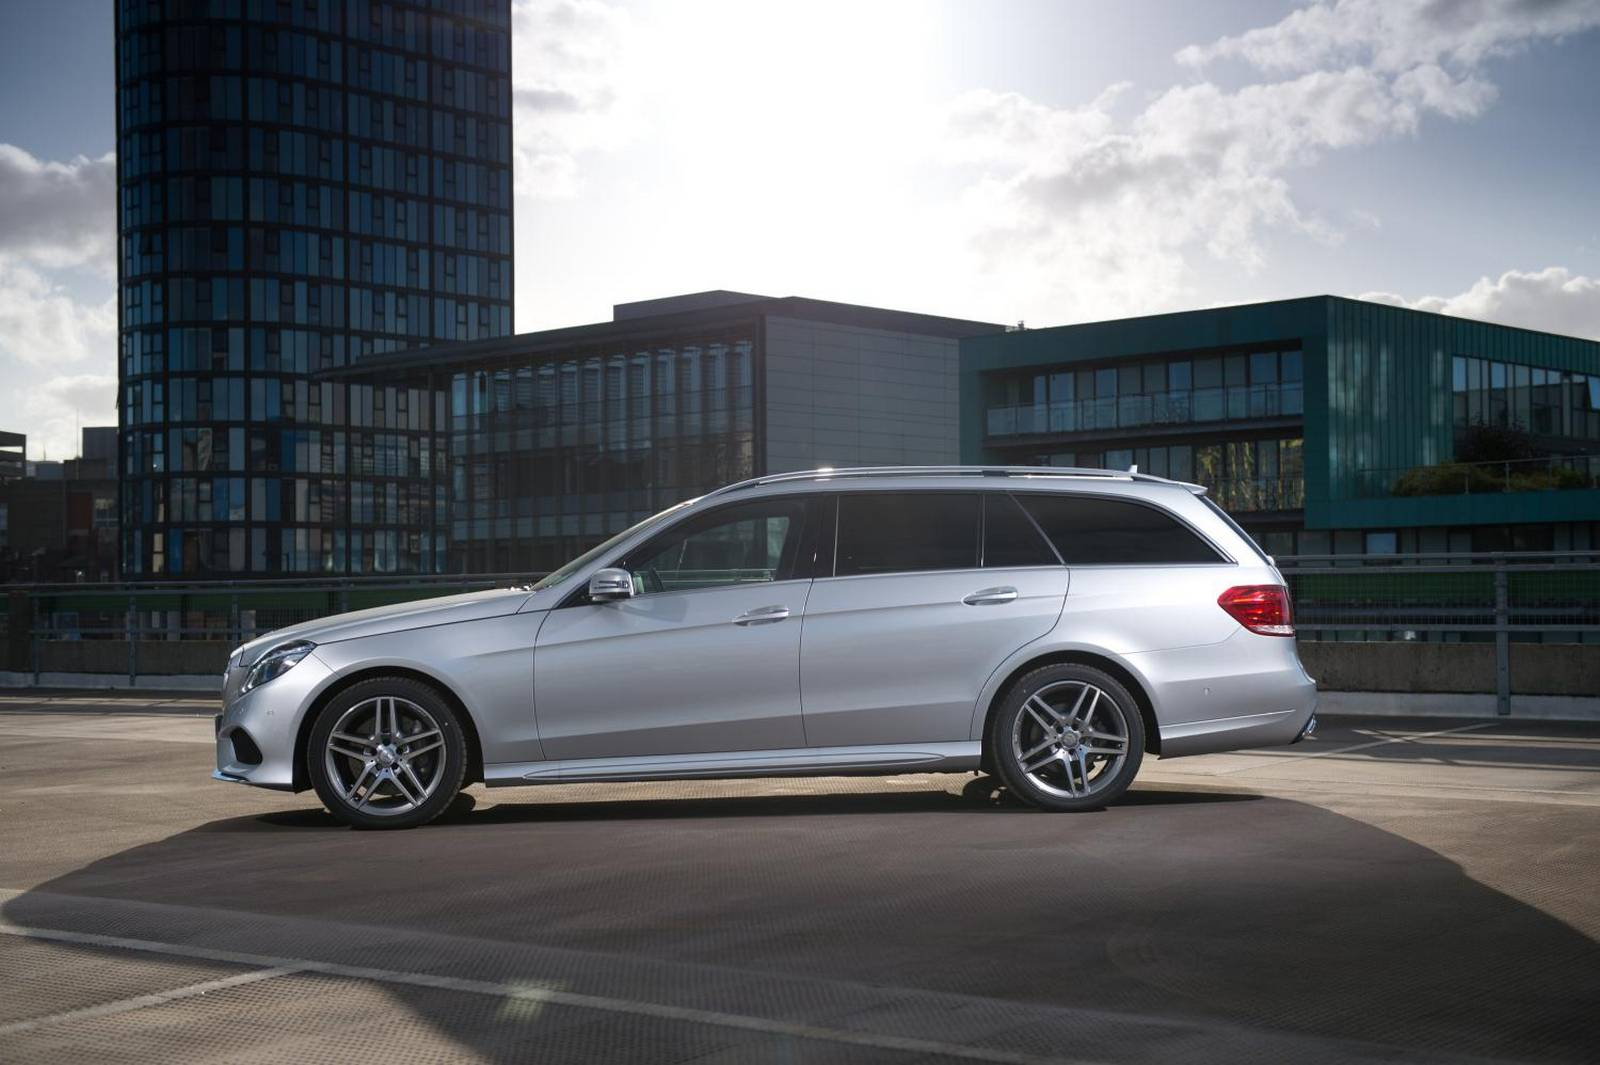 Mercedes benz e class updated for 2015 include 9 speed for Mercedes benz 2015 e class